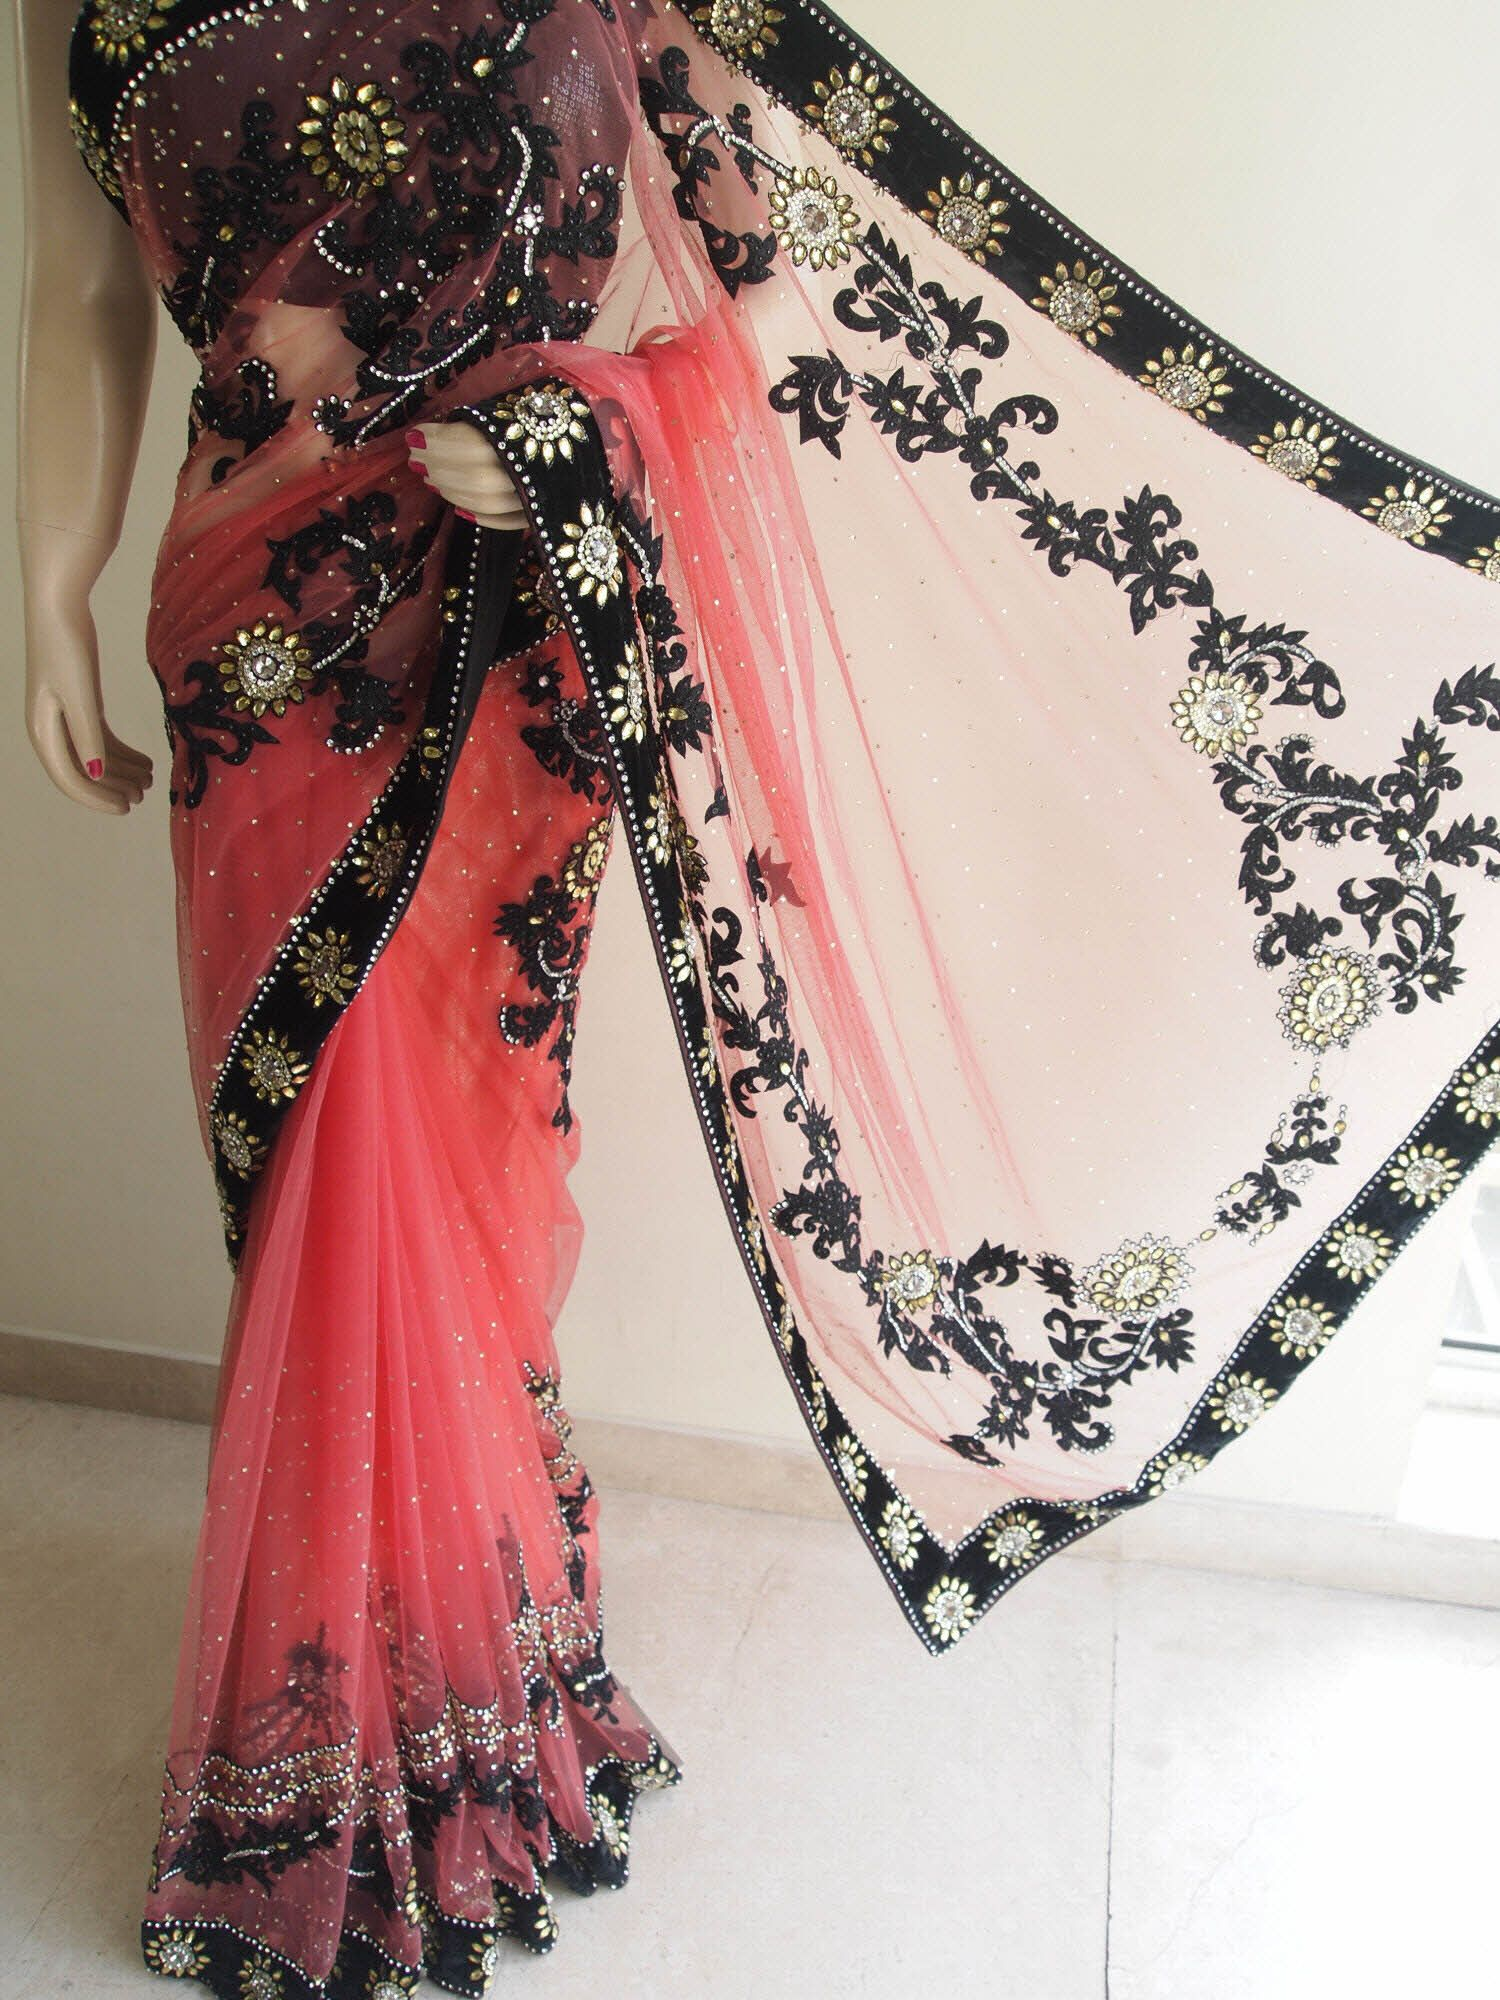 b8ec04bf6bedf Gajari Net Saree With Velvet Border   Extensive Embroidery